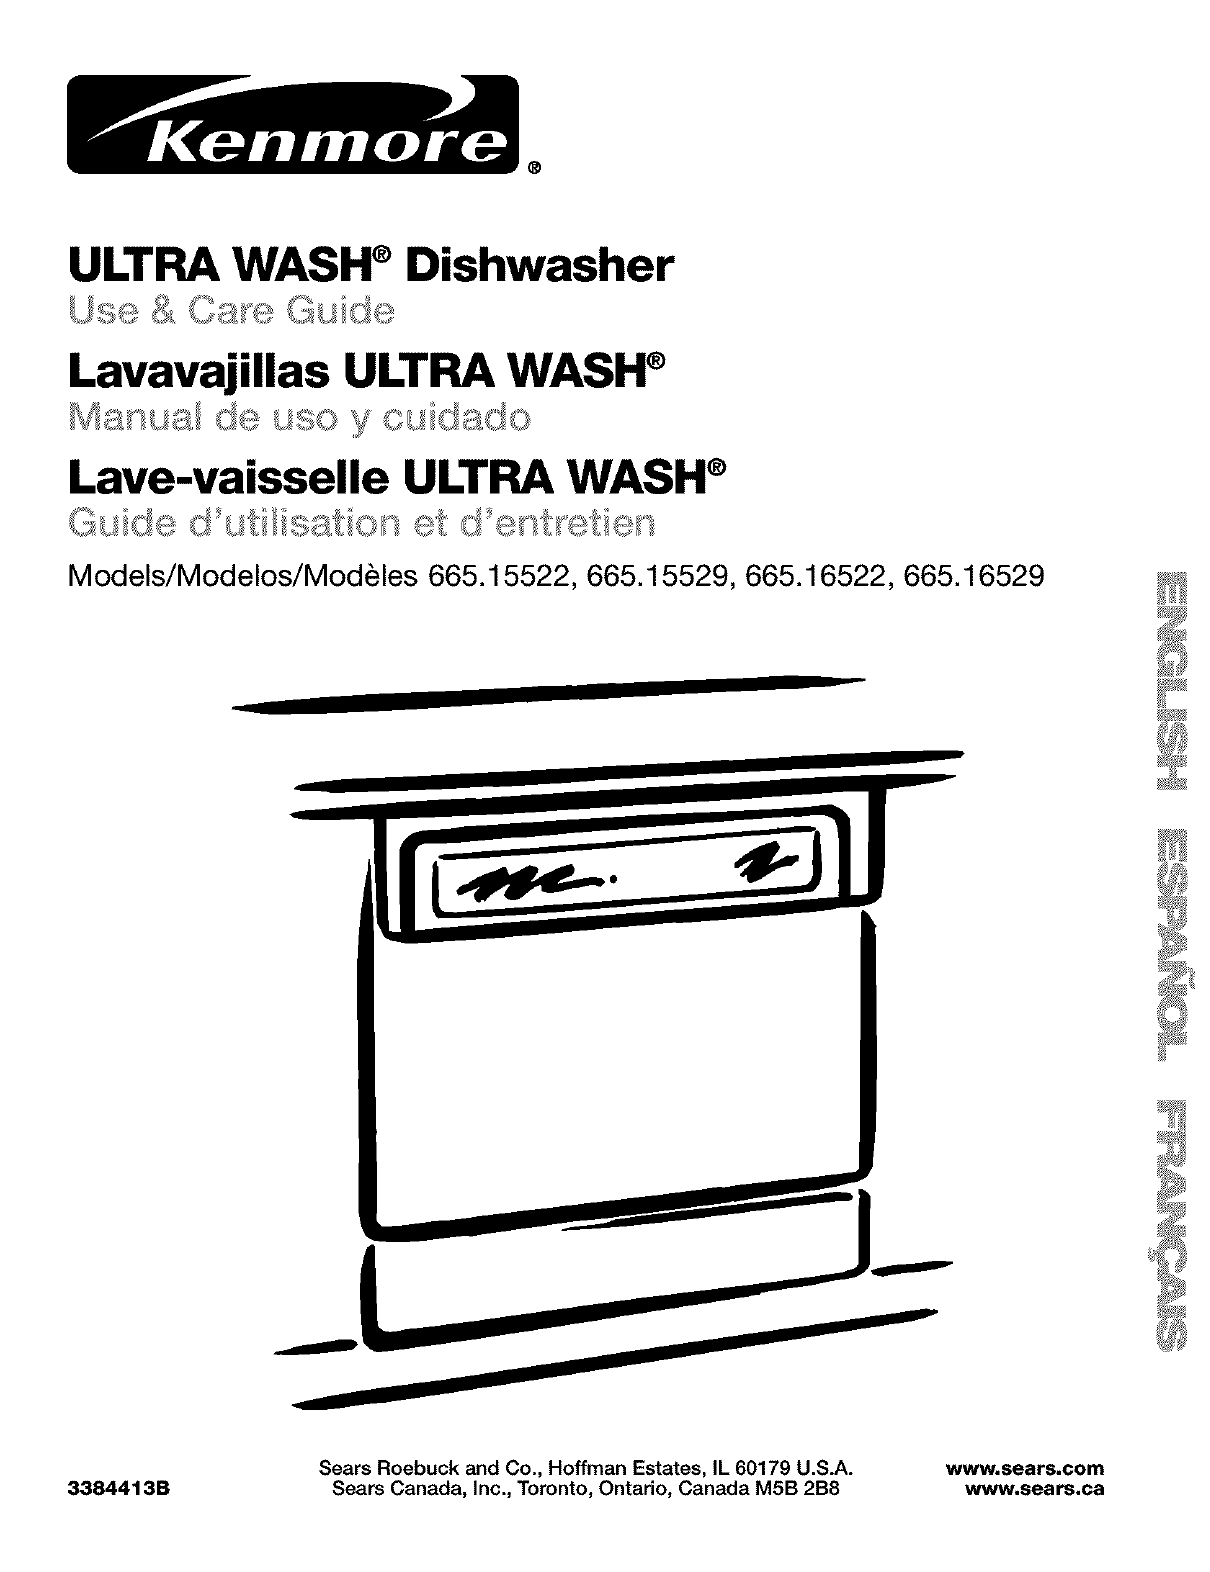 Download Kenmore Dishwasher And Manual free software